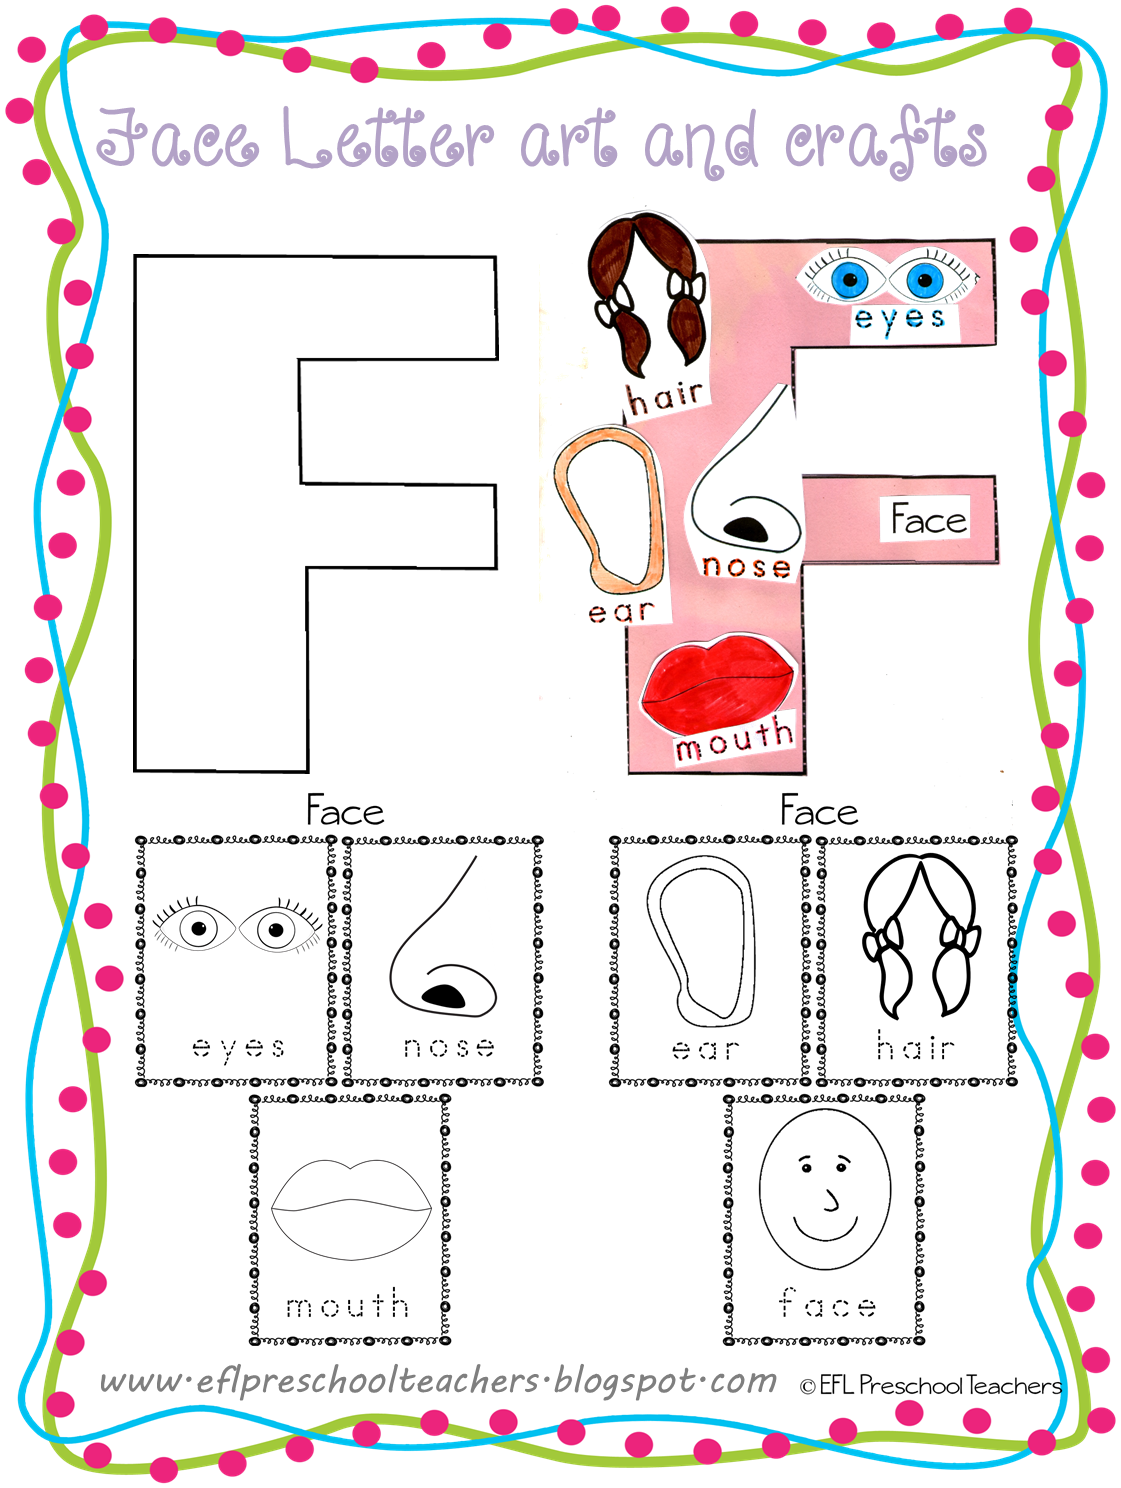 Esl Efl Preschool Teachers Face Teaching Materials For